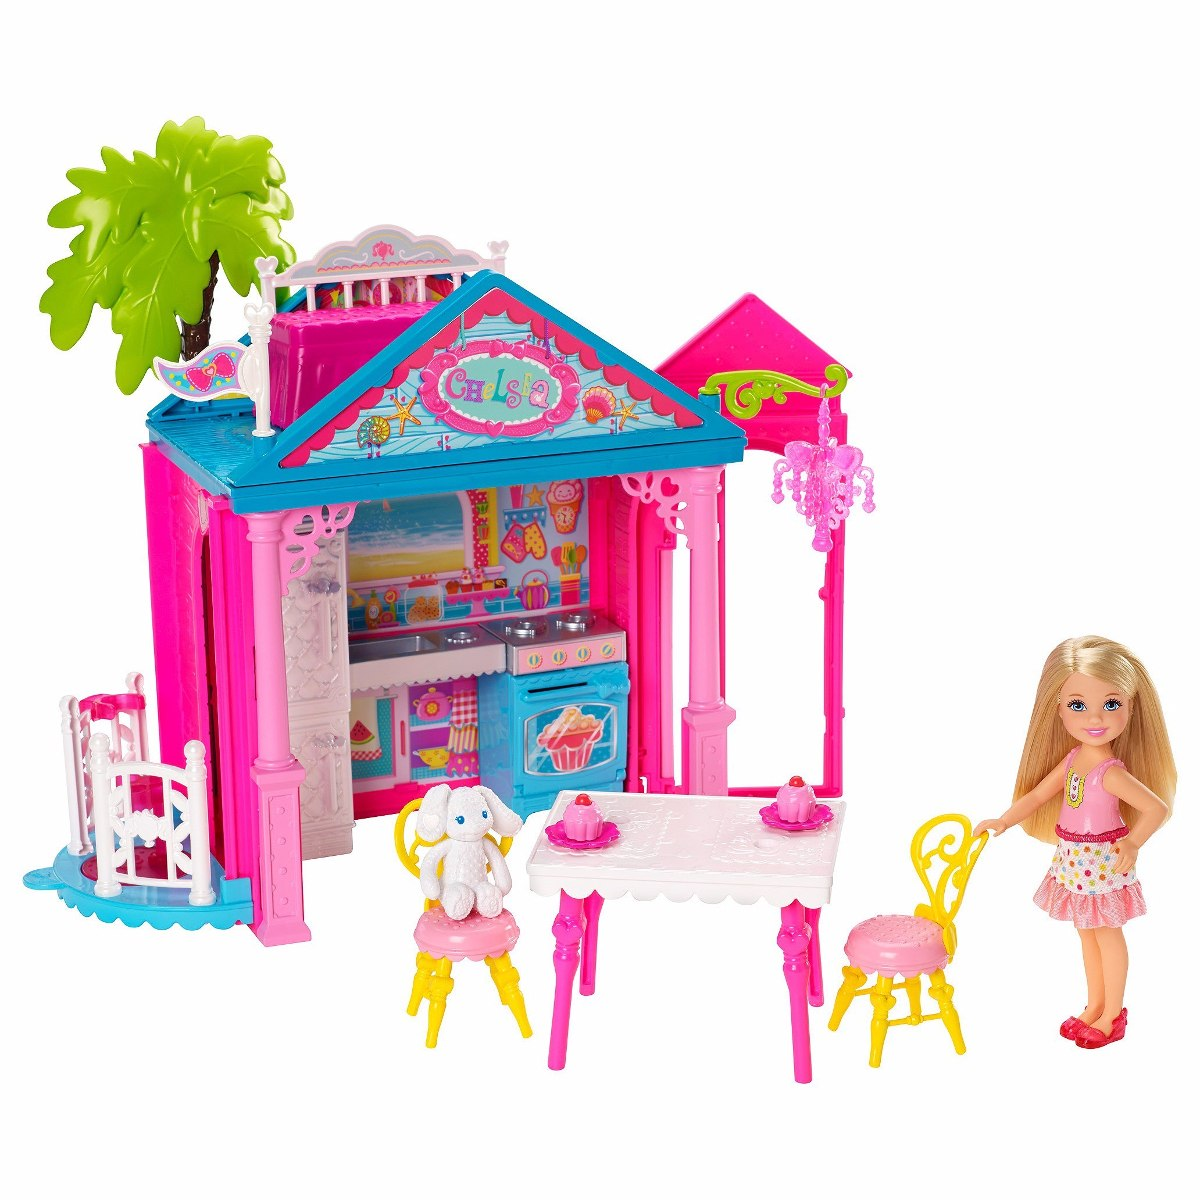 chelsea hermana barbie casa casita tobogn set mattel